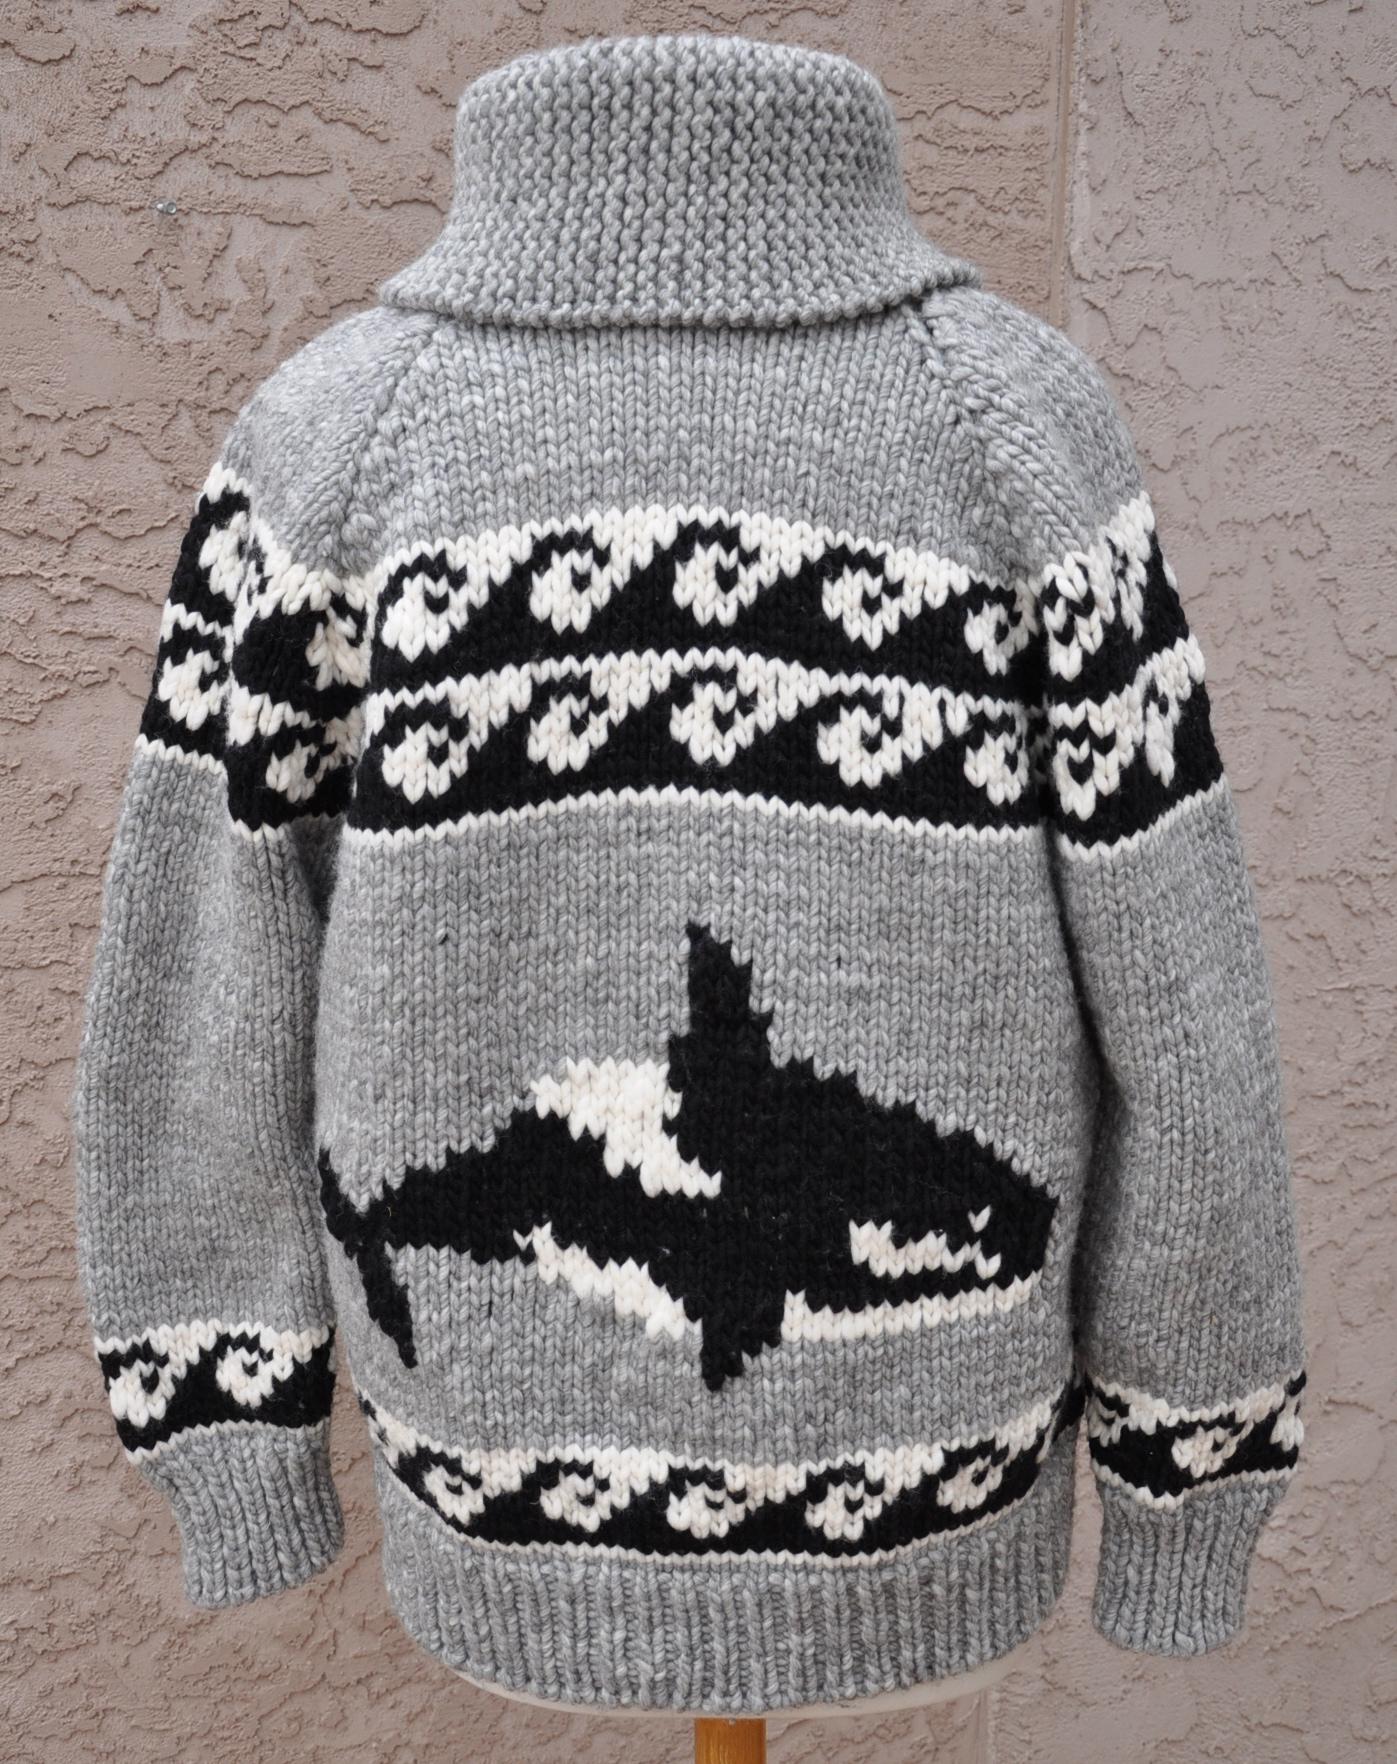 cowichan sweater back view orca and waves sweater ... jxbjxbo